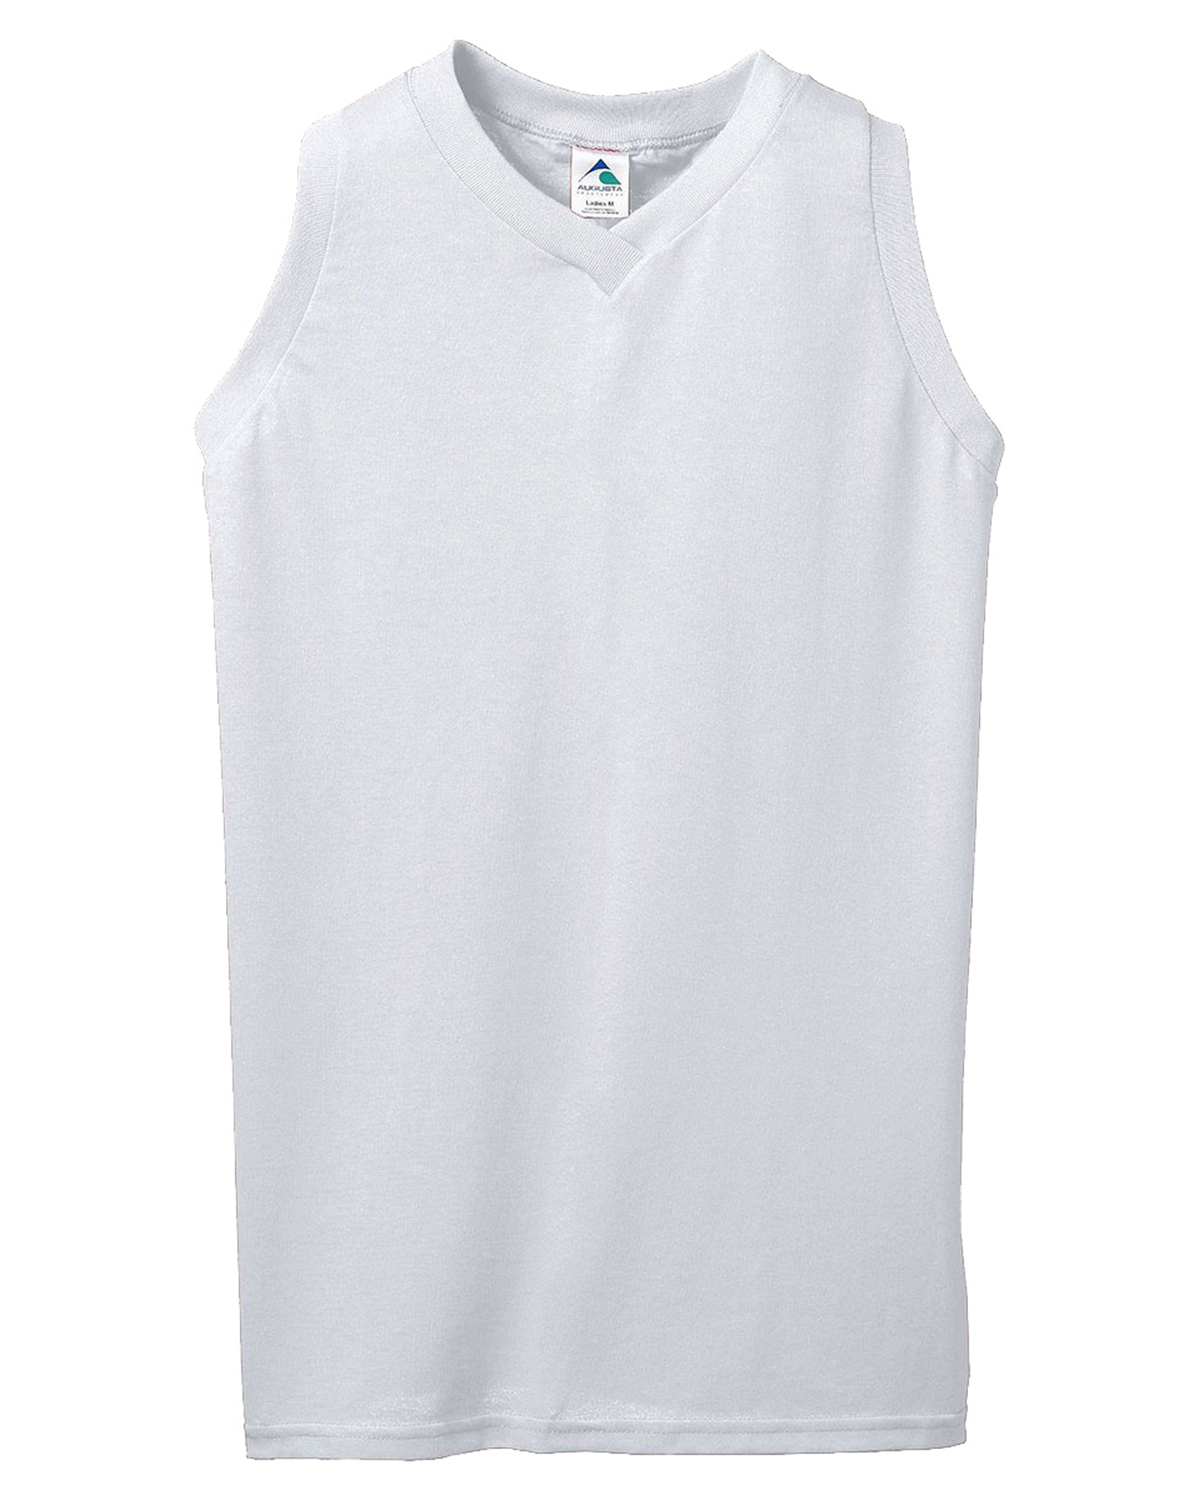 Augusta 557 Girl's Sleeveless V-Neck Poly/Cotton Jersey at GotApparel